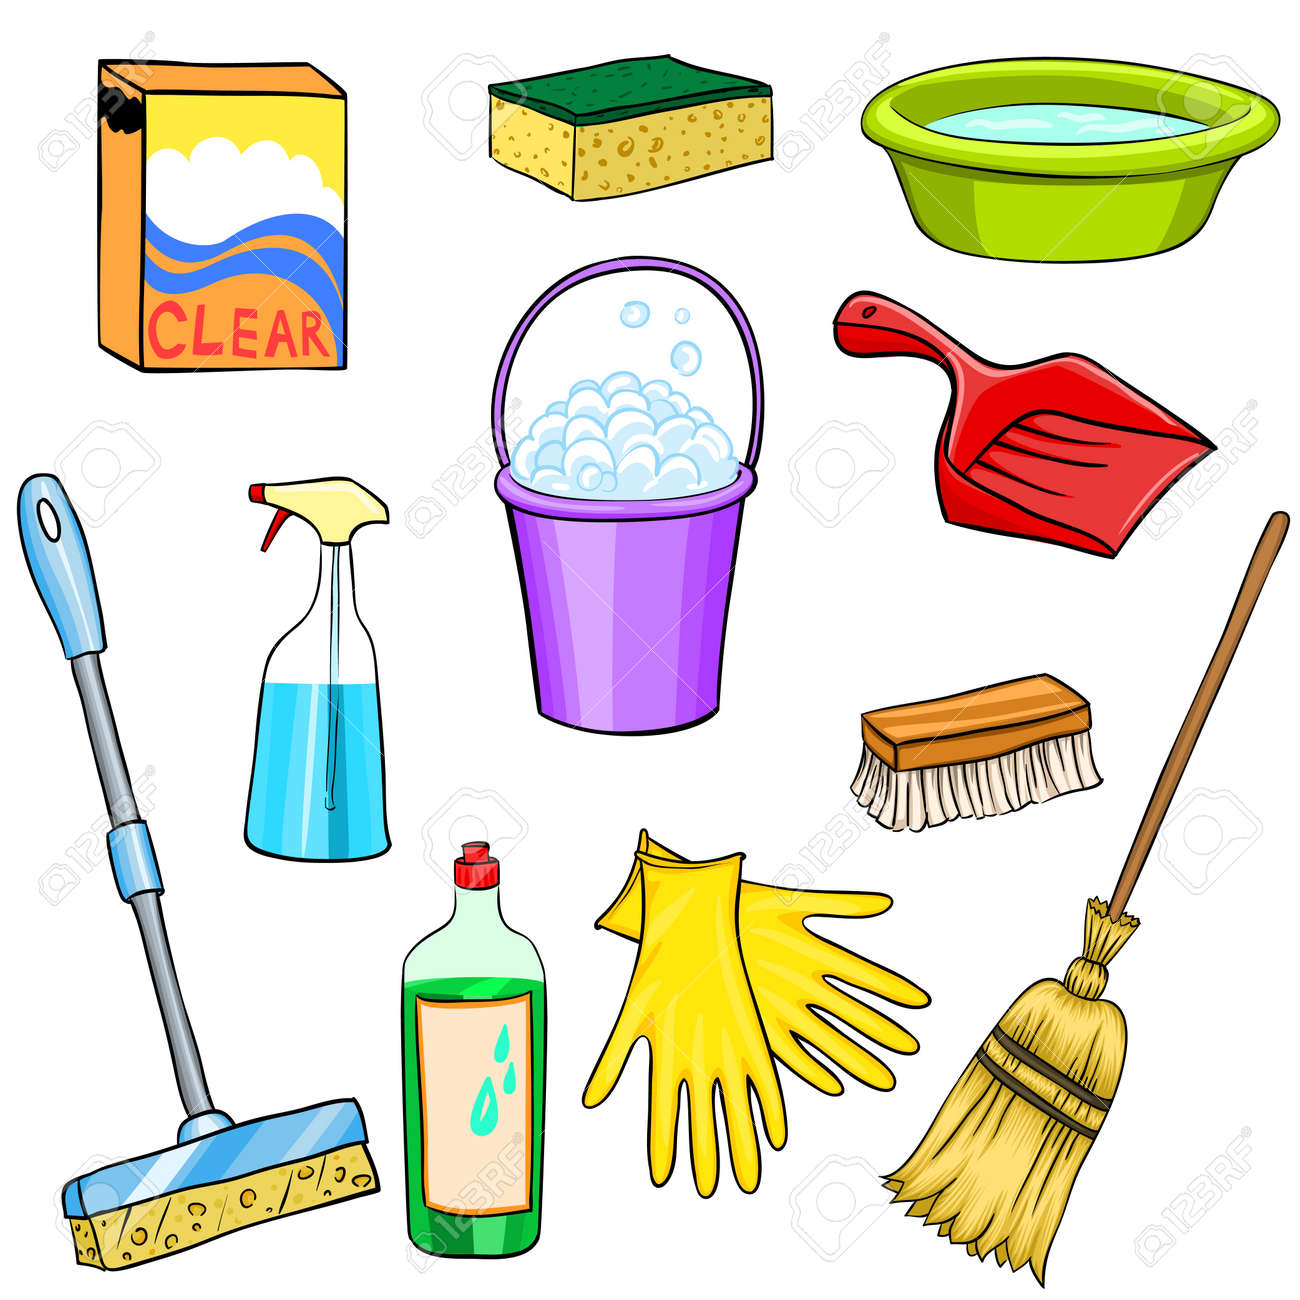 Cleaning Supplies Cartoon Set Royalty Free Cliparts, Vectors, And ...